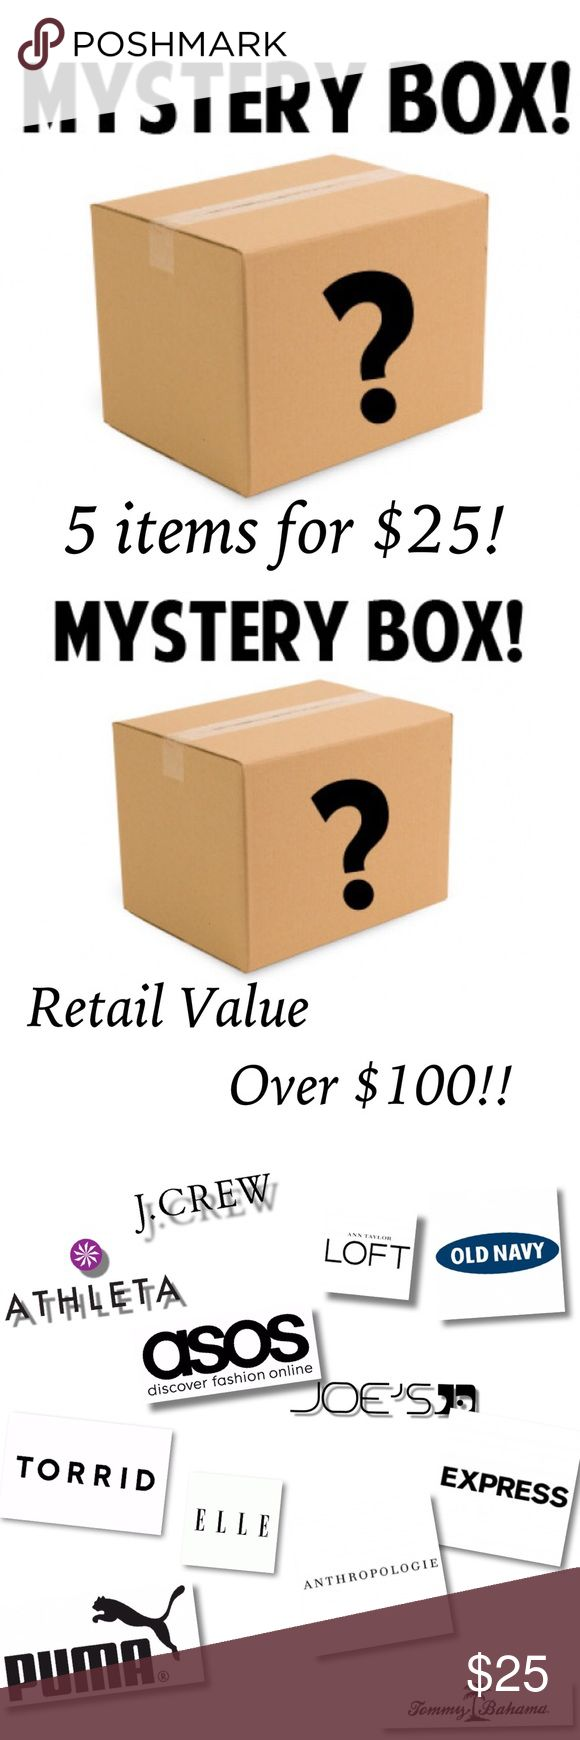 Mystery Box Bundle! Retail value over $100! All items are EUC, NWT or Boutique. Some may contain jewelry and/ or accessories. I have 4 sizes listed. You can pick S/M , M/L, L/XL or XL/1X  All boxes will contain a mix of pants, skirts, shorts, leggings, tops, jewelry, swimwear or accessories. Many are listed and many are not. Look through my closet to check out my style!   Please Note: All sales are final. If you don't like something you can always reposh it! Each item costs $6.20 with…